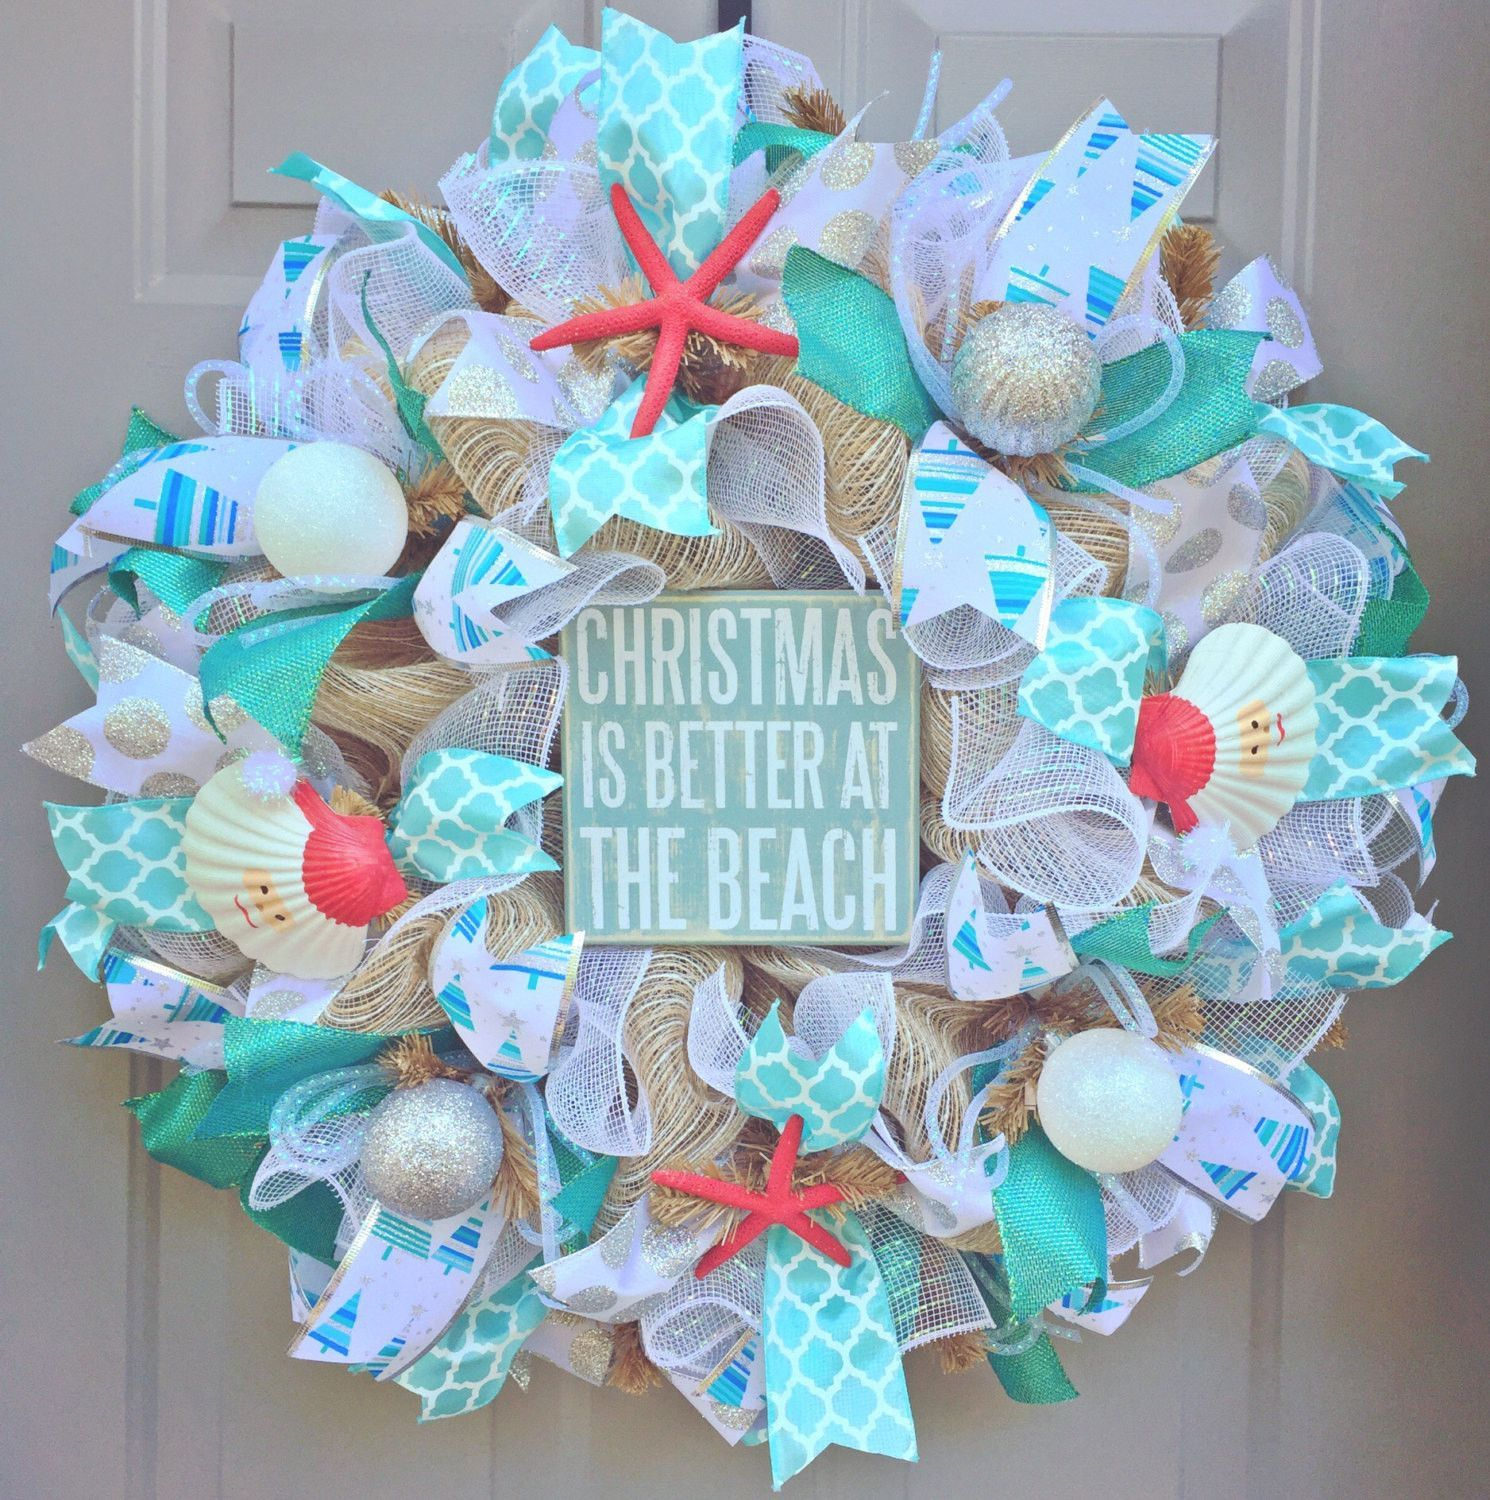 Do It Yourself Home Design: Christmas Is Better At The Beach Wreath, Seashell Wreath